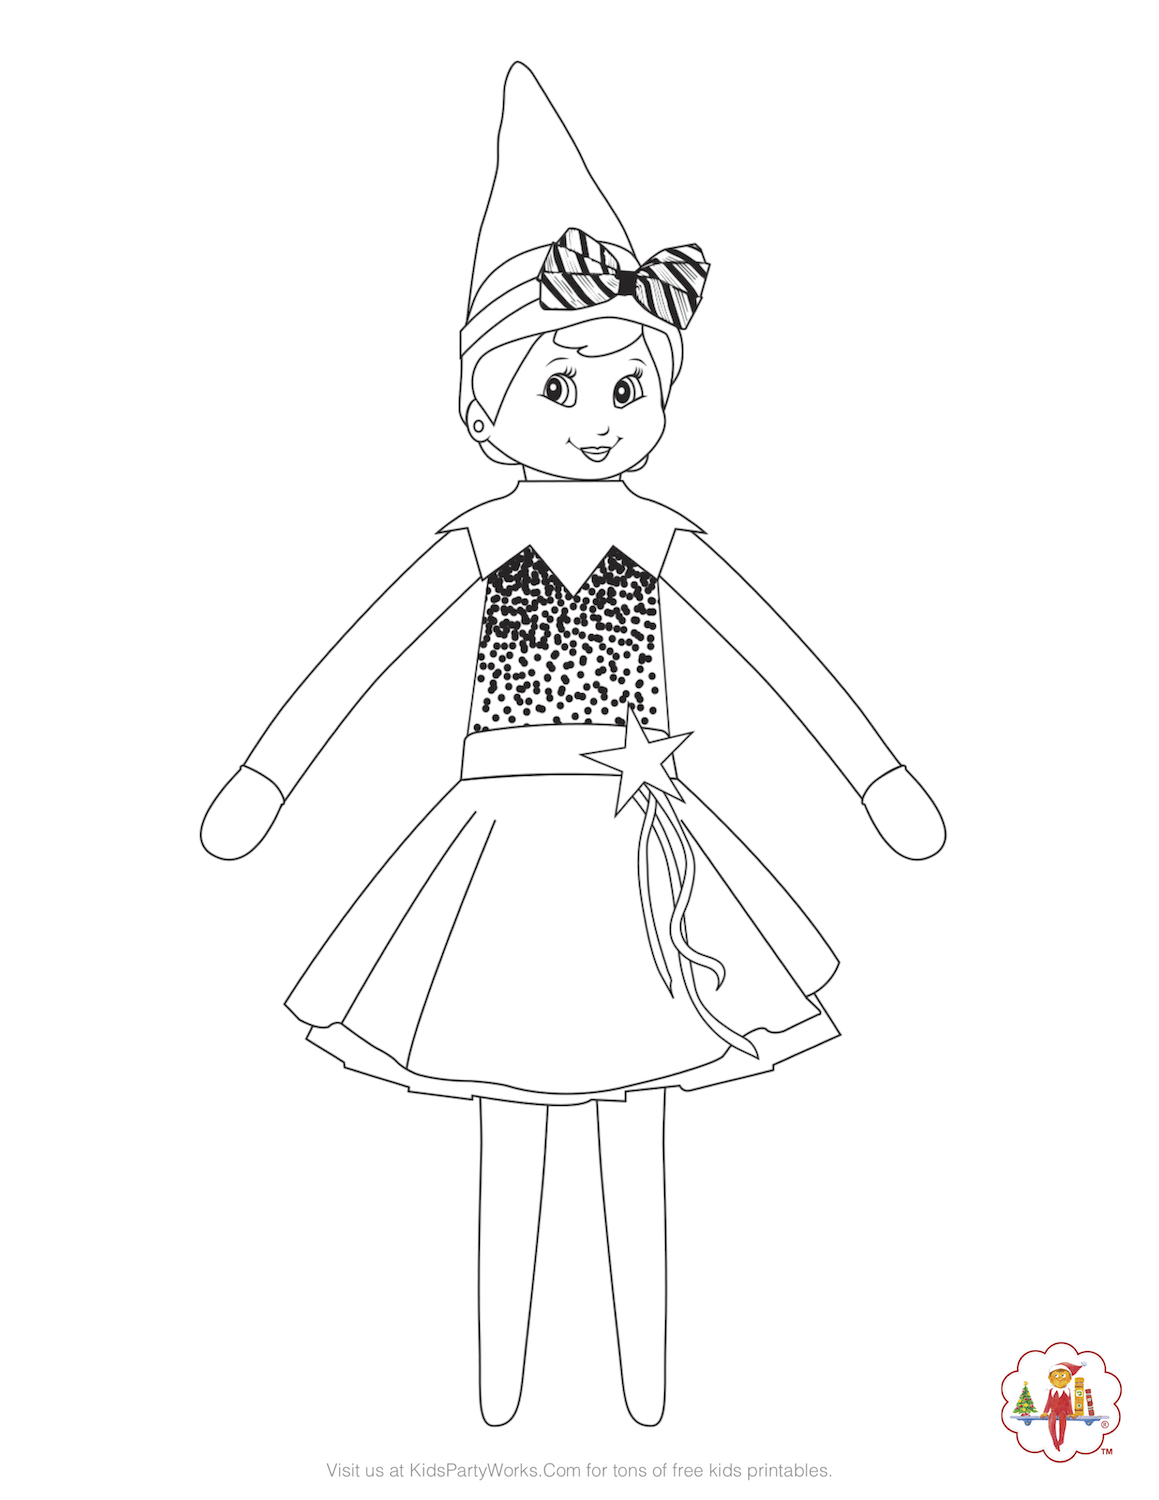 Girl Elf On The Shelf Coloring Page She S Ready For The Christmas Season In Her Kidsparty Christmas Coloring Pages Girl Elf Free Christmas Coloring Pages